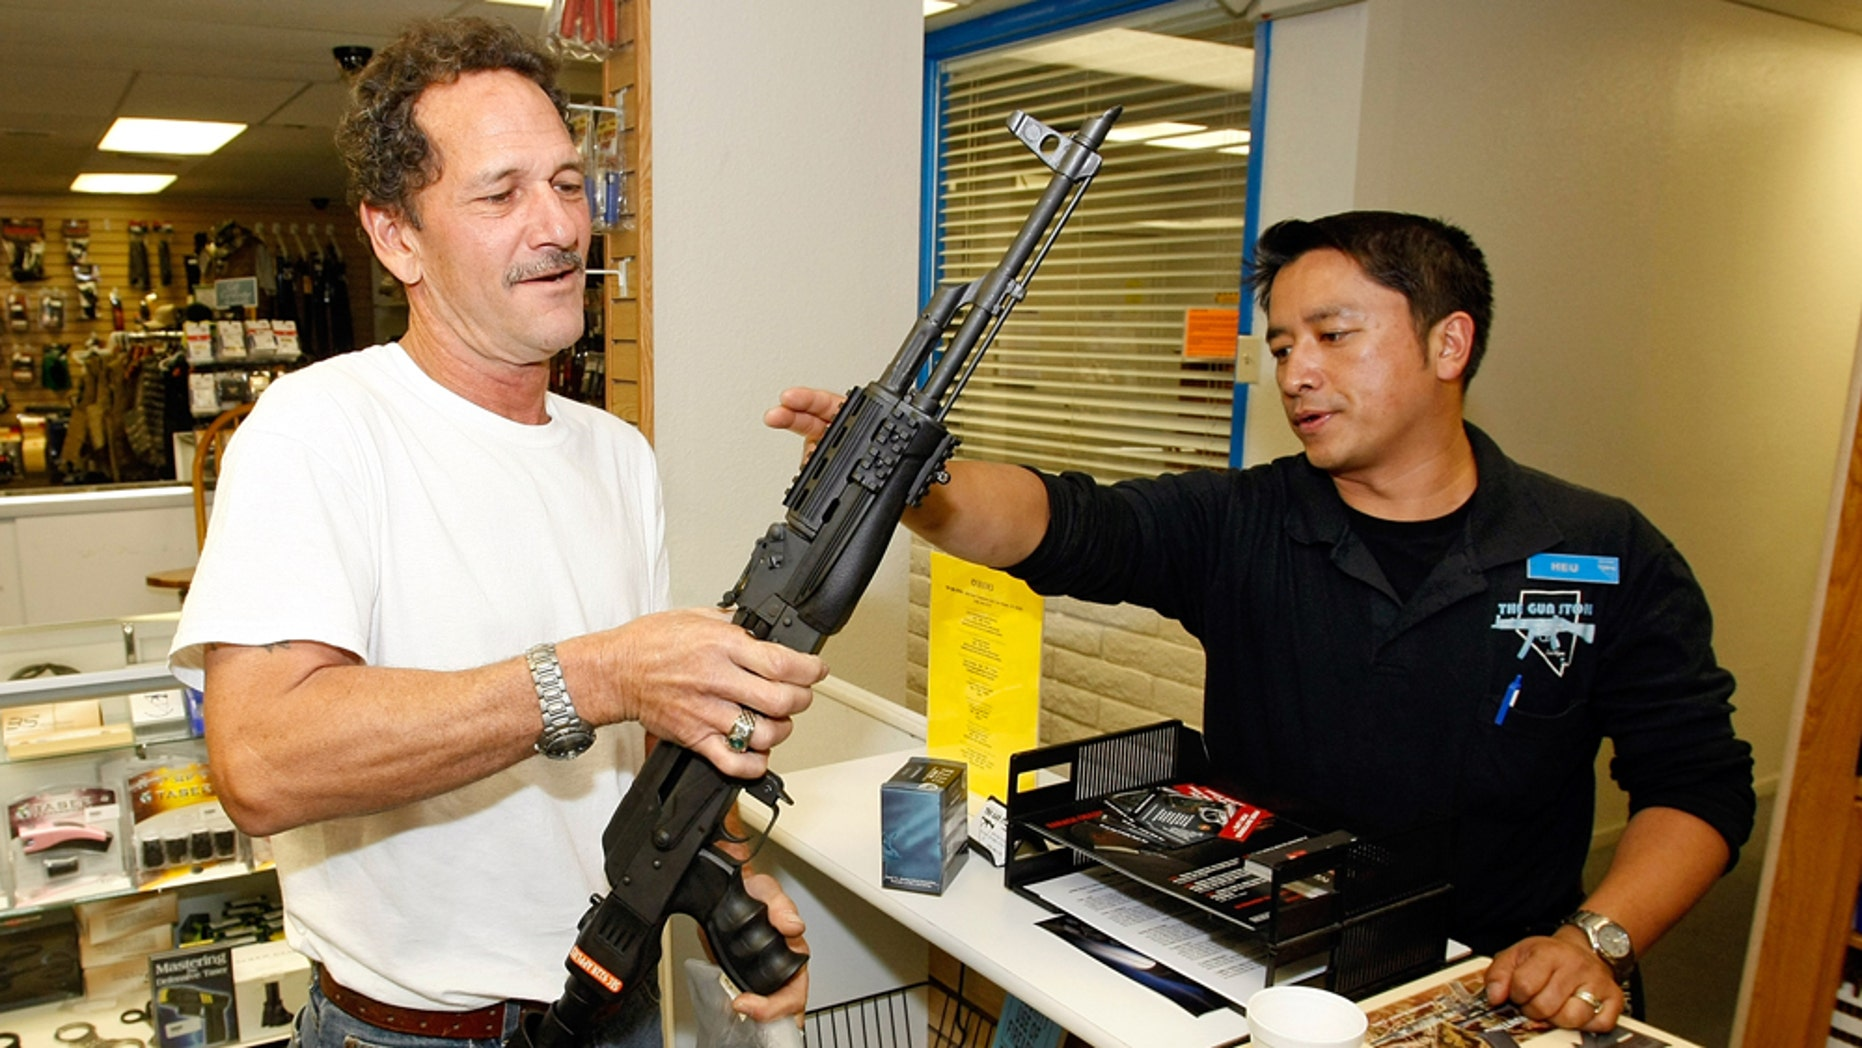 LAS VEGAS - NOVEMBER 14:  The Gun Store rangemaster Heu Thao (R) shows Gregory Smith of Nevada the modifications made to his AK-47 assault rifle November 14, 2008 in Las Vegas, Nevada. Store manager Cliff Wilson said he's seen a large spike in sales since Barack Obama was elected president on November 4, with customers citing fears about the president-elect's record on firearms. The election, combined with a slumping economy, has contributed to an overall increase of 25-30 percent in gun sales at the store, Wilson said.  (Photo by Ethan Miller/Getty Images)